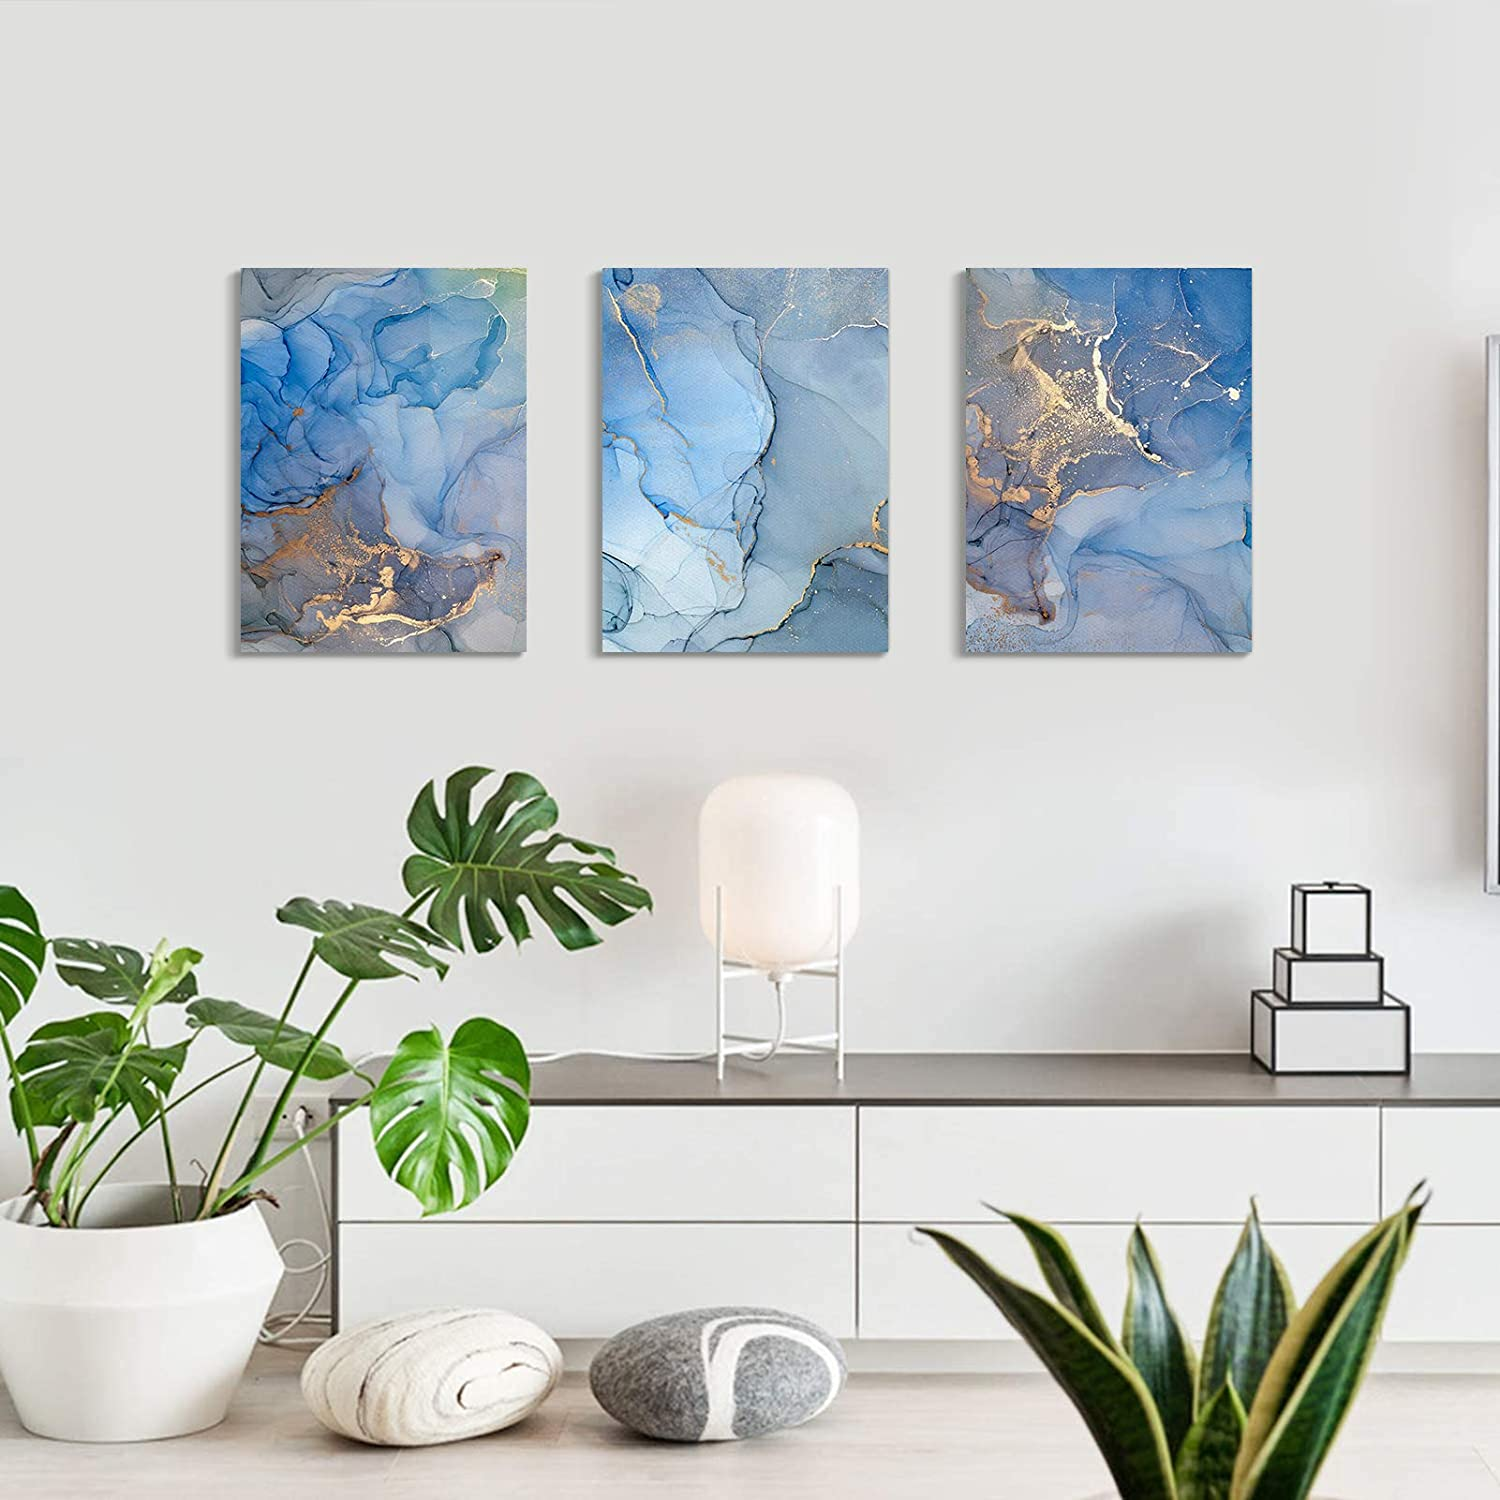 Emvency Canvas Wall Art for Bedroom Living Room, Blue Abstract Watercolor Painting Canvas Prints Artwork Wall Decor 12x16 inch/piece, 3 Pieces Modern Painting Ready to Hang Office Home Decorations